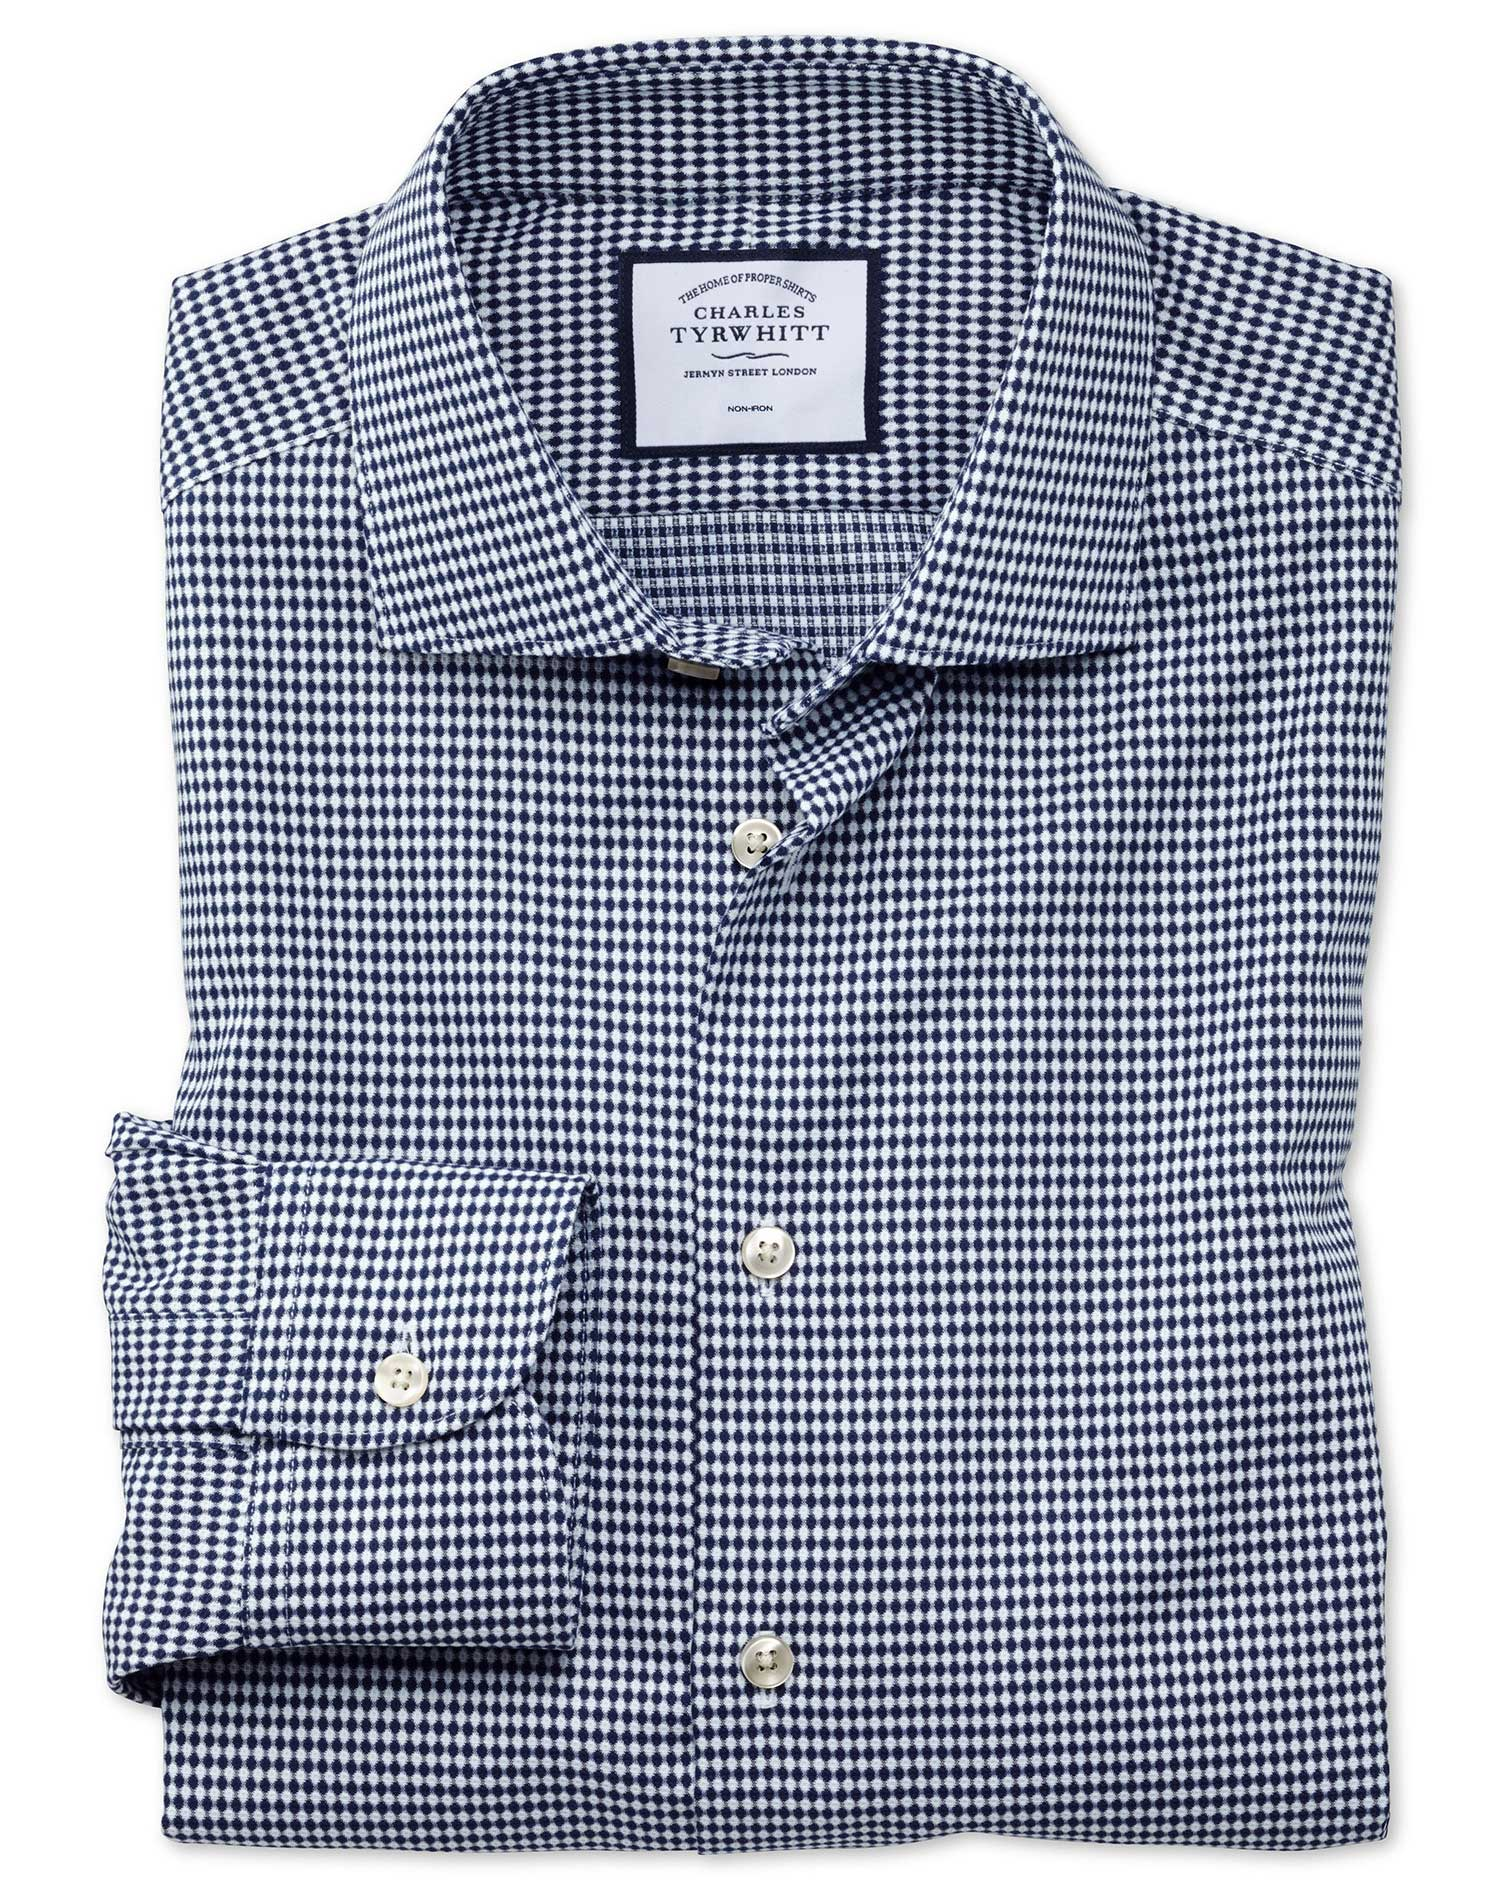 Classic Fit Business Casual Non-Iron Navy Oval Dobby Cotton Formal Shirt Single Cuff Size 17/34 by C